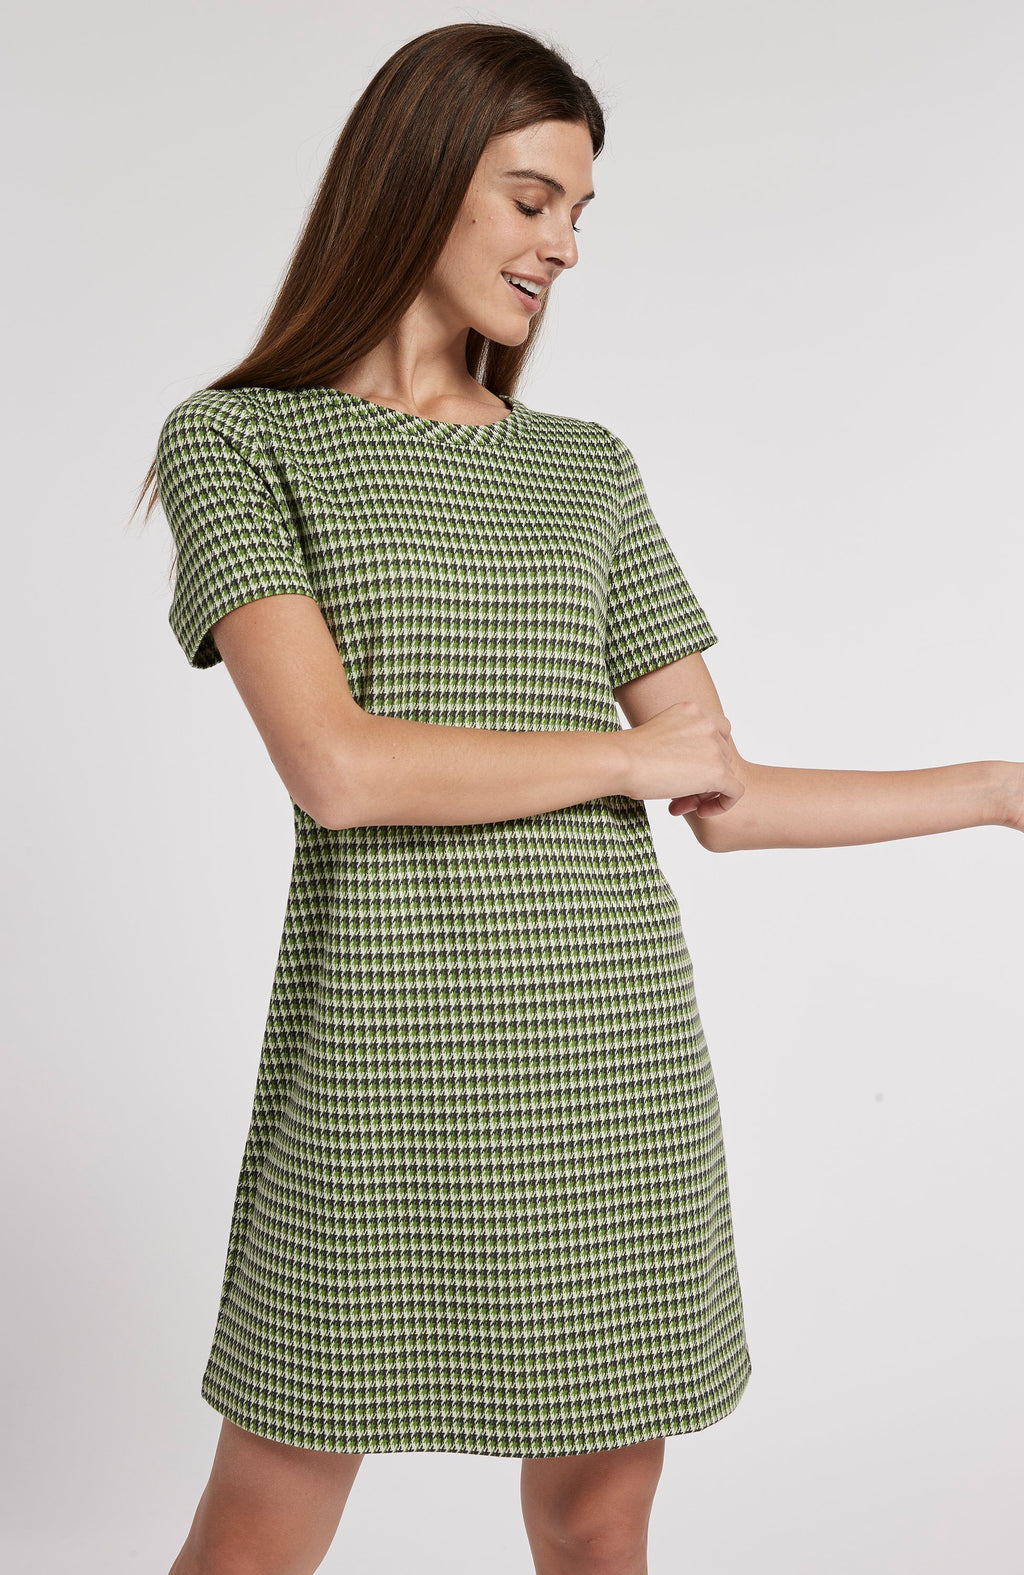 MORGAN JACQUARD DRESS - HPL TylerBoe XS HPL